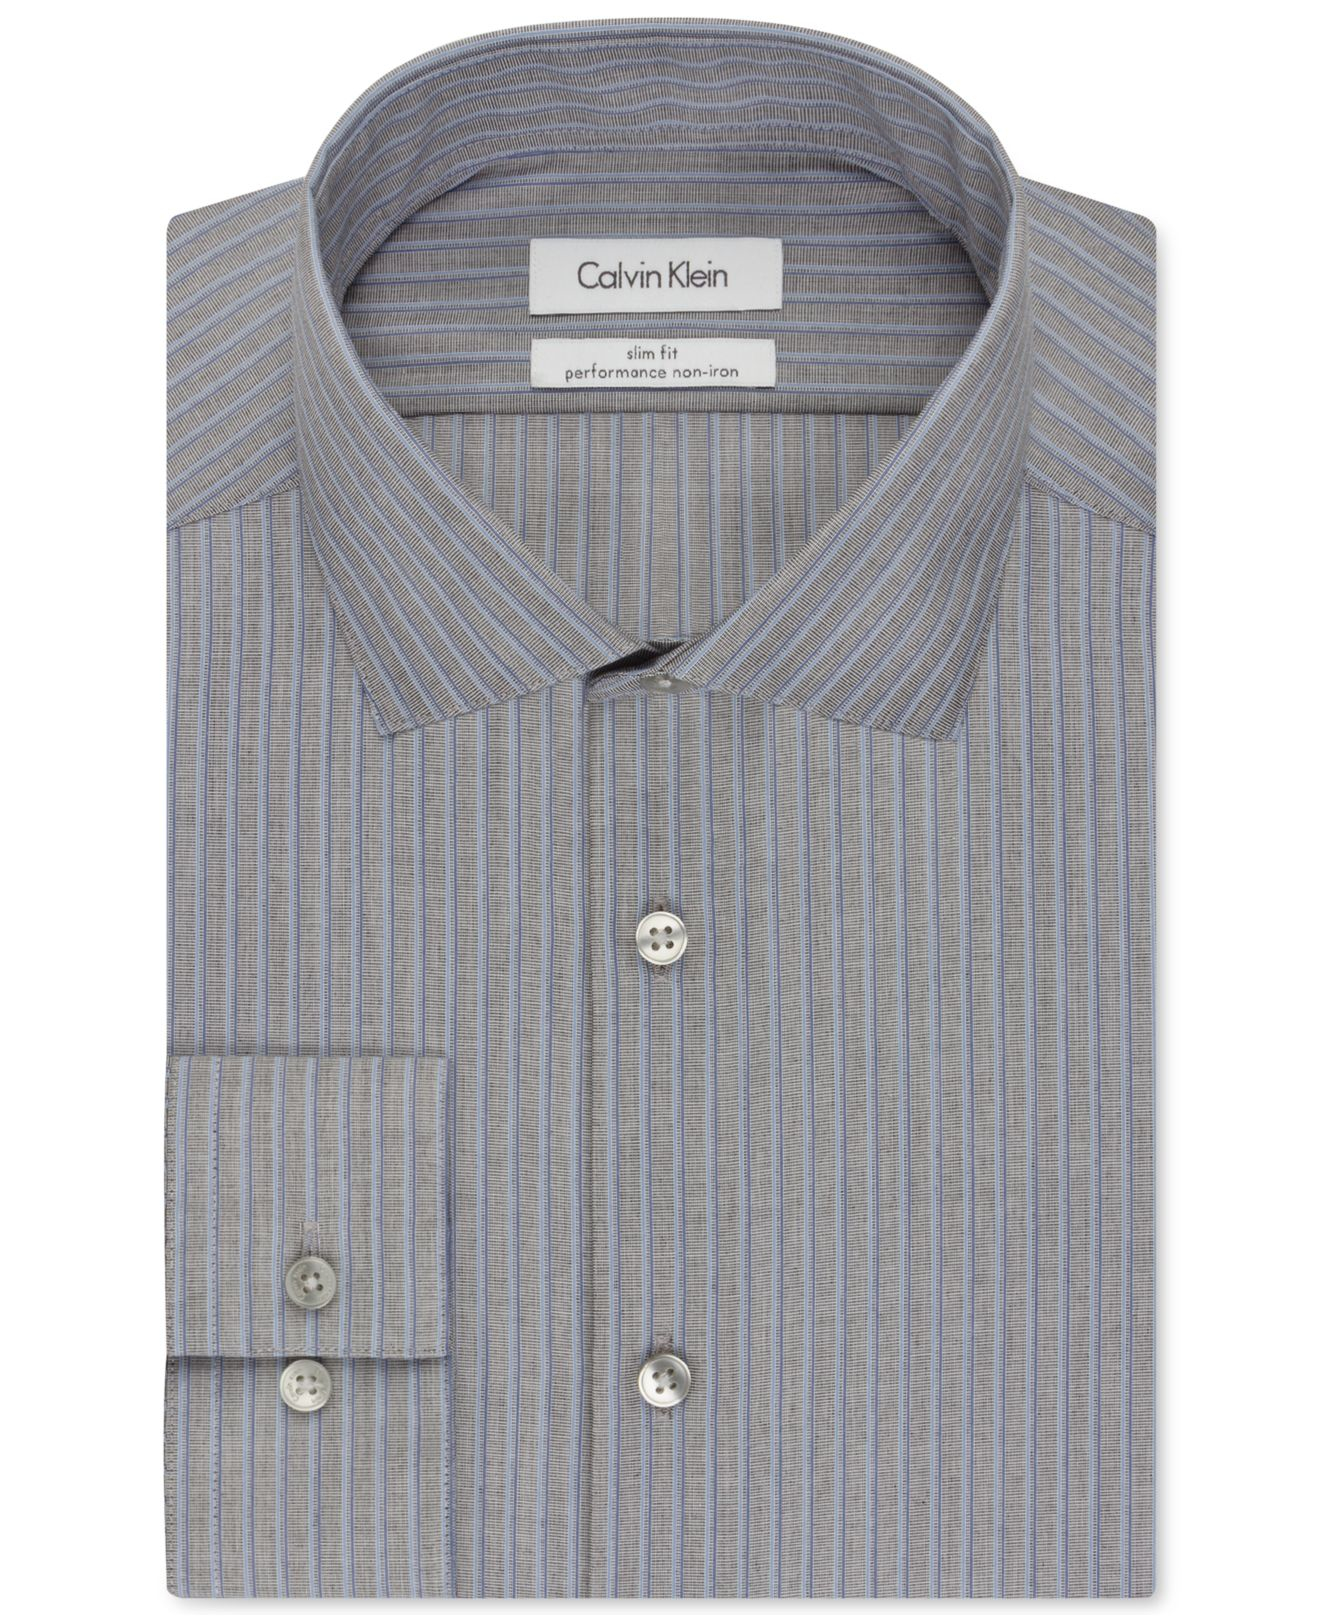 Calvin klein steel slim fit non iron performance seagull for No iron slim fit dress shirts